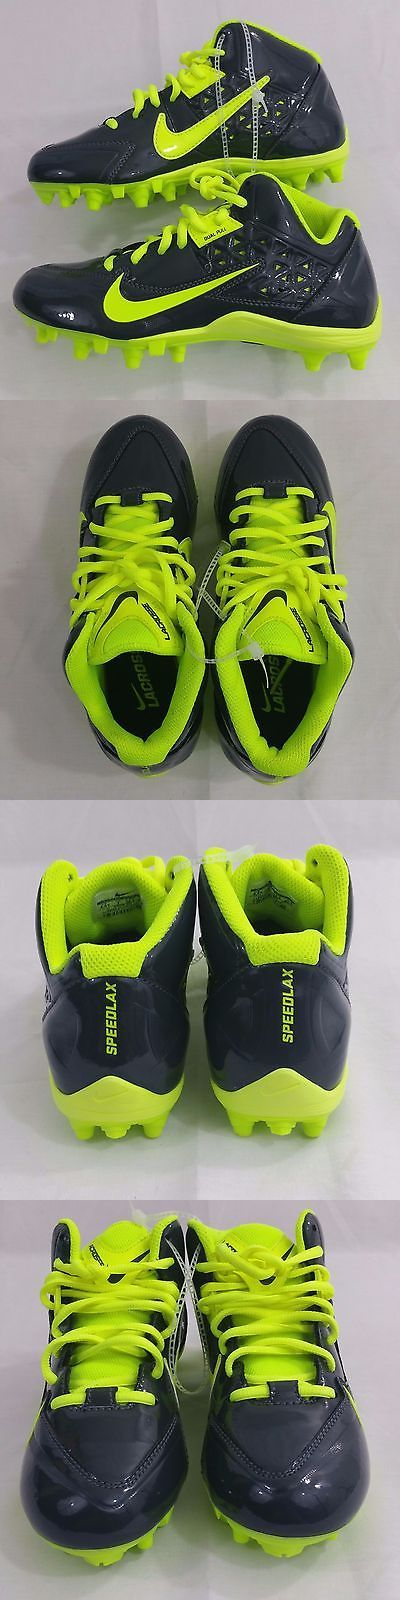 Youth 159118: New Nike Lacrosse Speedlax 4 Dual Pull Black Light Green Youth Cleats Size 4.5Y -> BUY IT NOW ONLY: $34.99 on eBay!